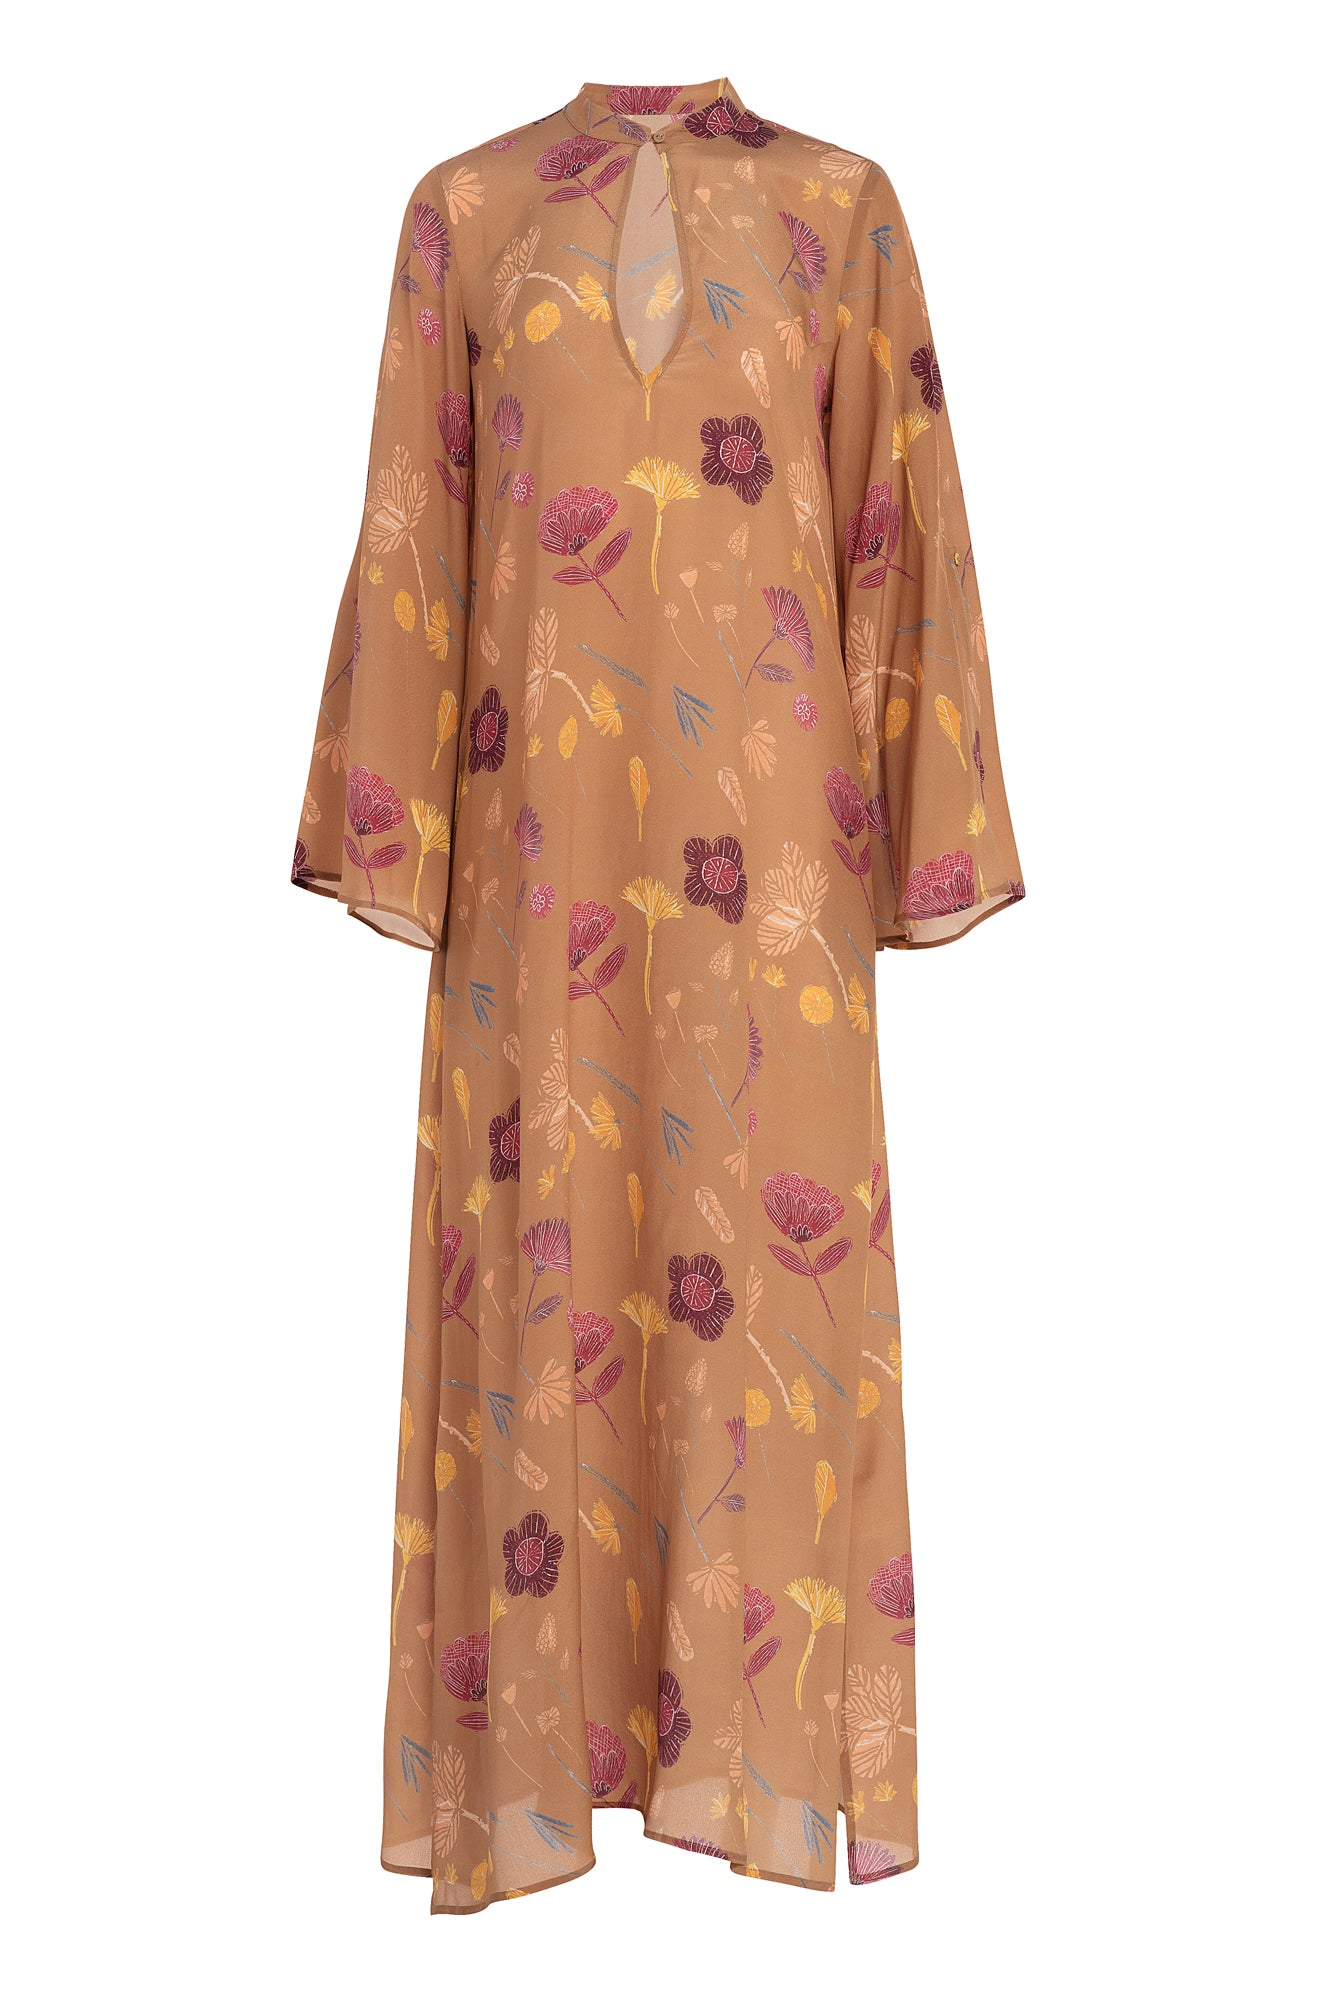 Carolina K Saturday Kaftan in Cinnamon Tea Flowers